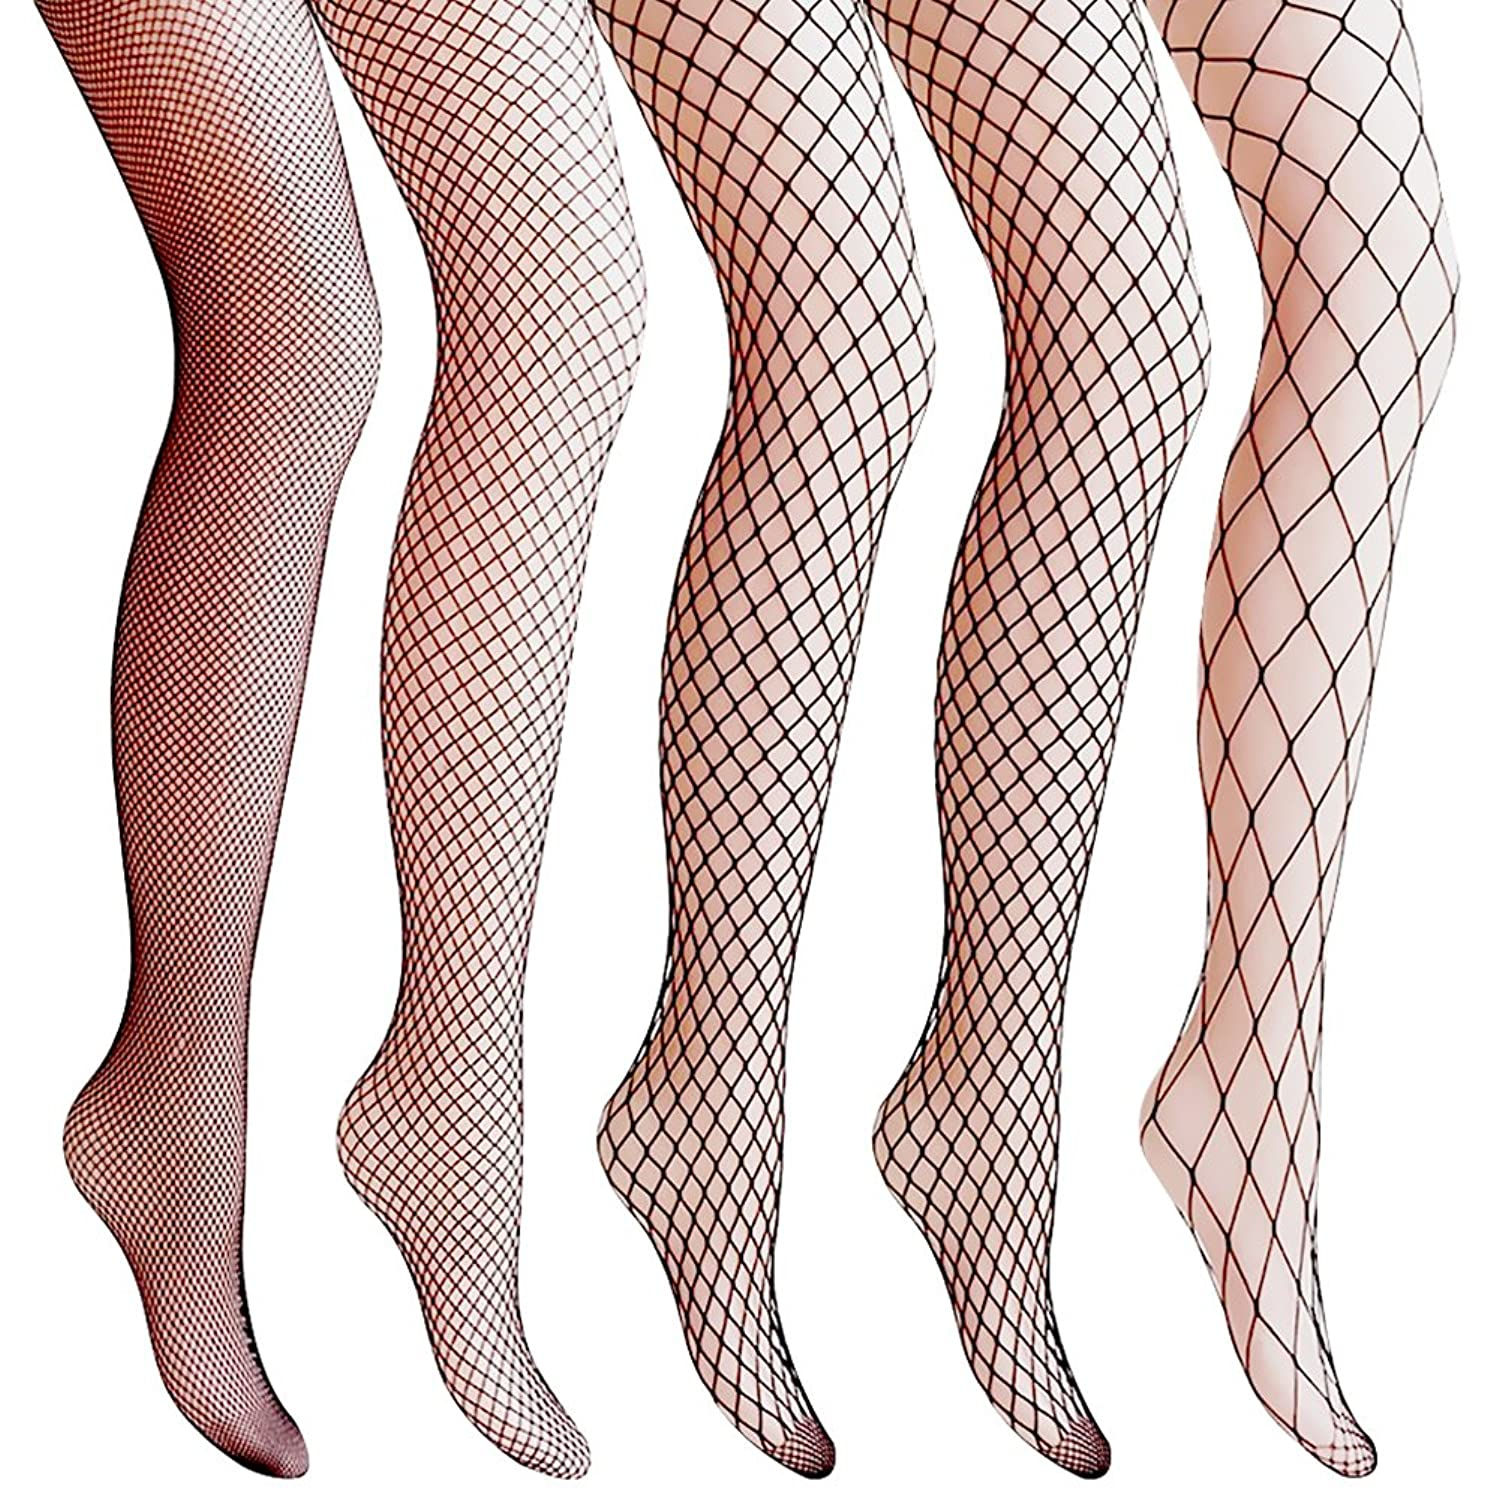 c27dbe77e EXCELLENT MATERIAL - Our fishnet stockings are made of 90% nylon   10%  spandex